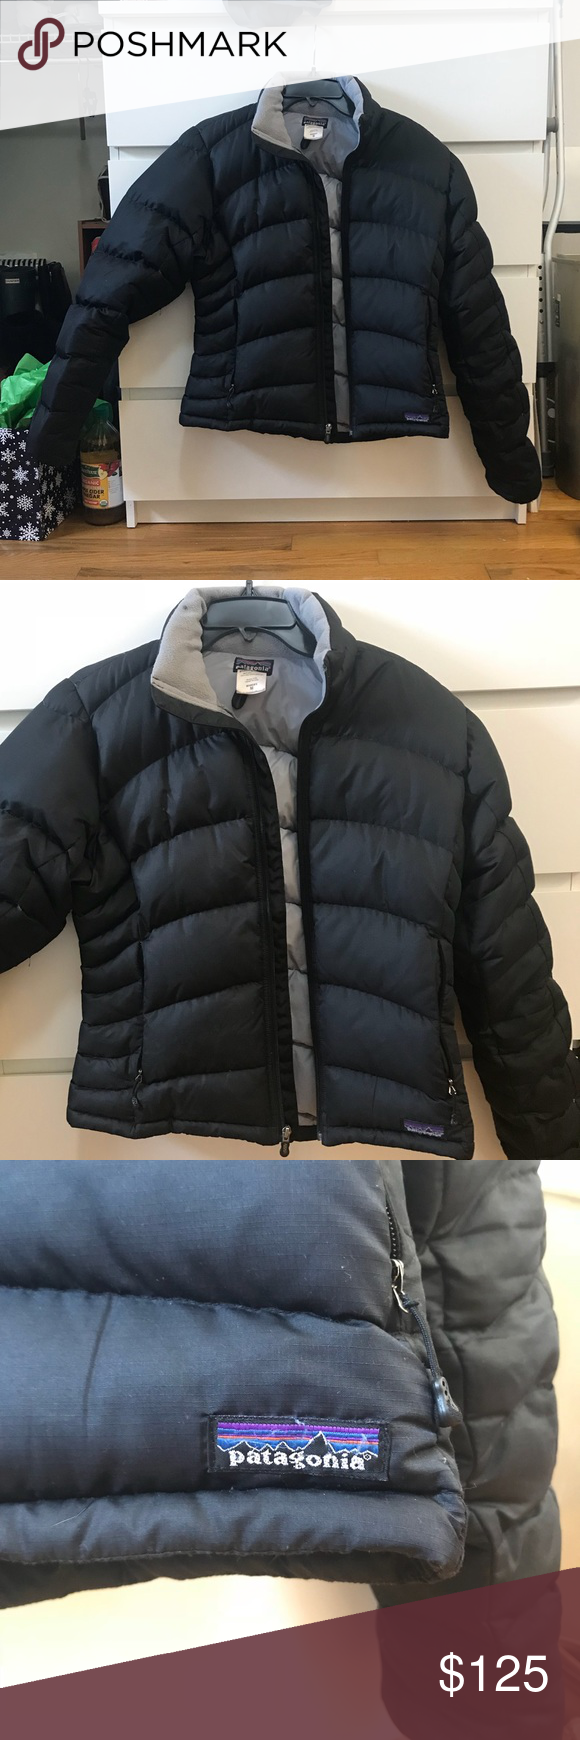 Patagonia Puffer Jacket Black Patagonia Puffer Coat Small Stain Around Collar As Pictured Nothing Wrong With It Other Jackets Patagonia Jacket Puffer Jackets [ 1740 x 580 Pixel ]